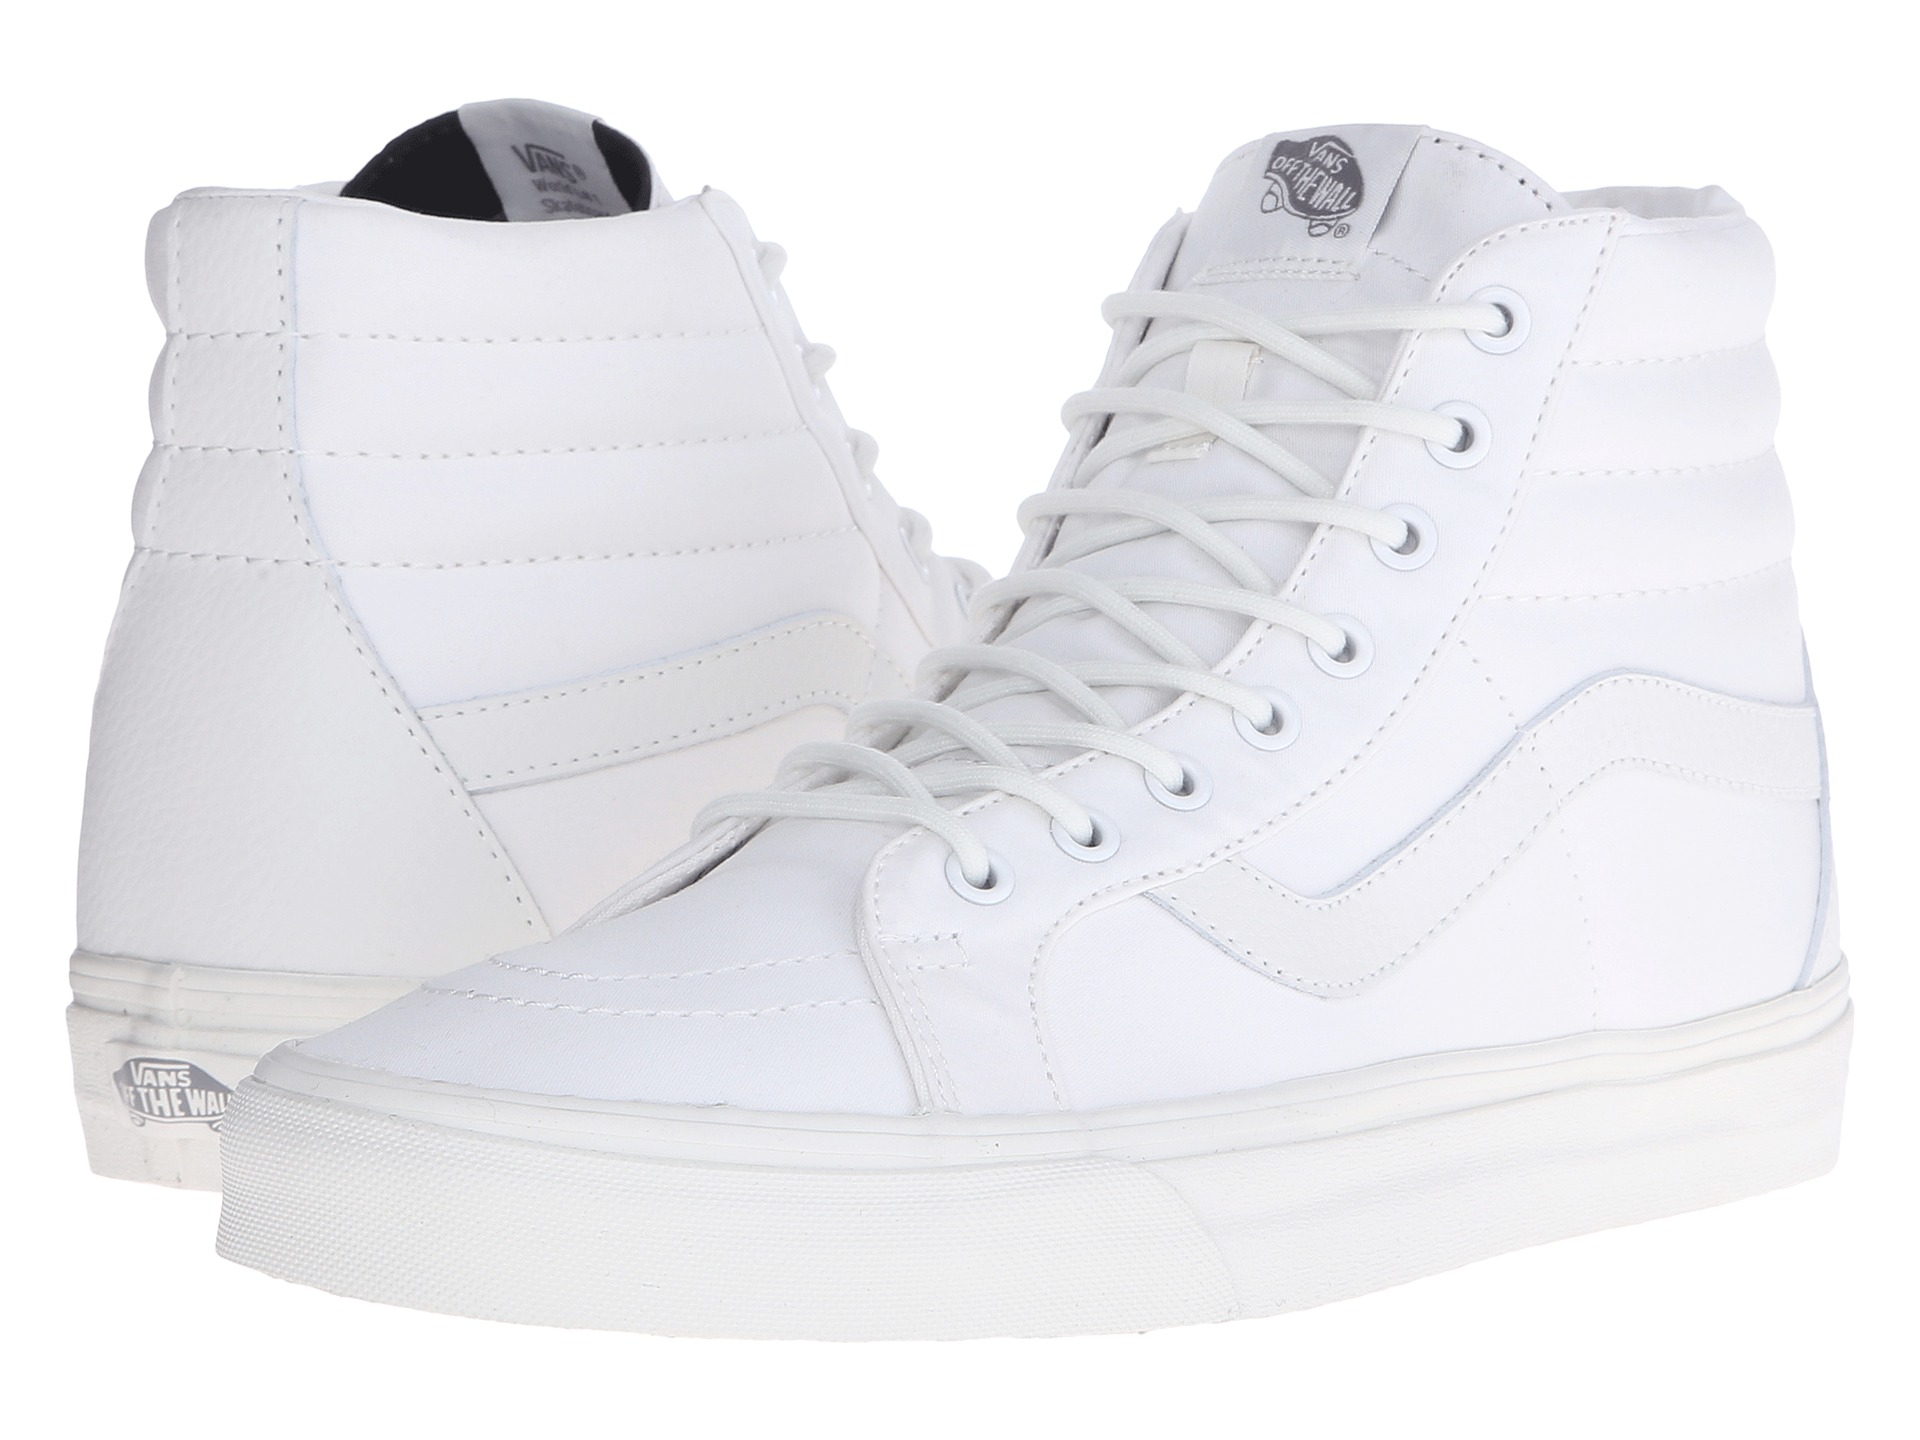 b28d3d7b83 Lyst - Vans Sk8-hi Reissue in White for Men